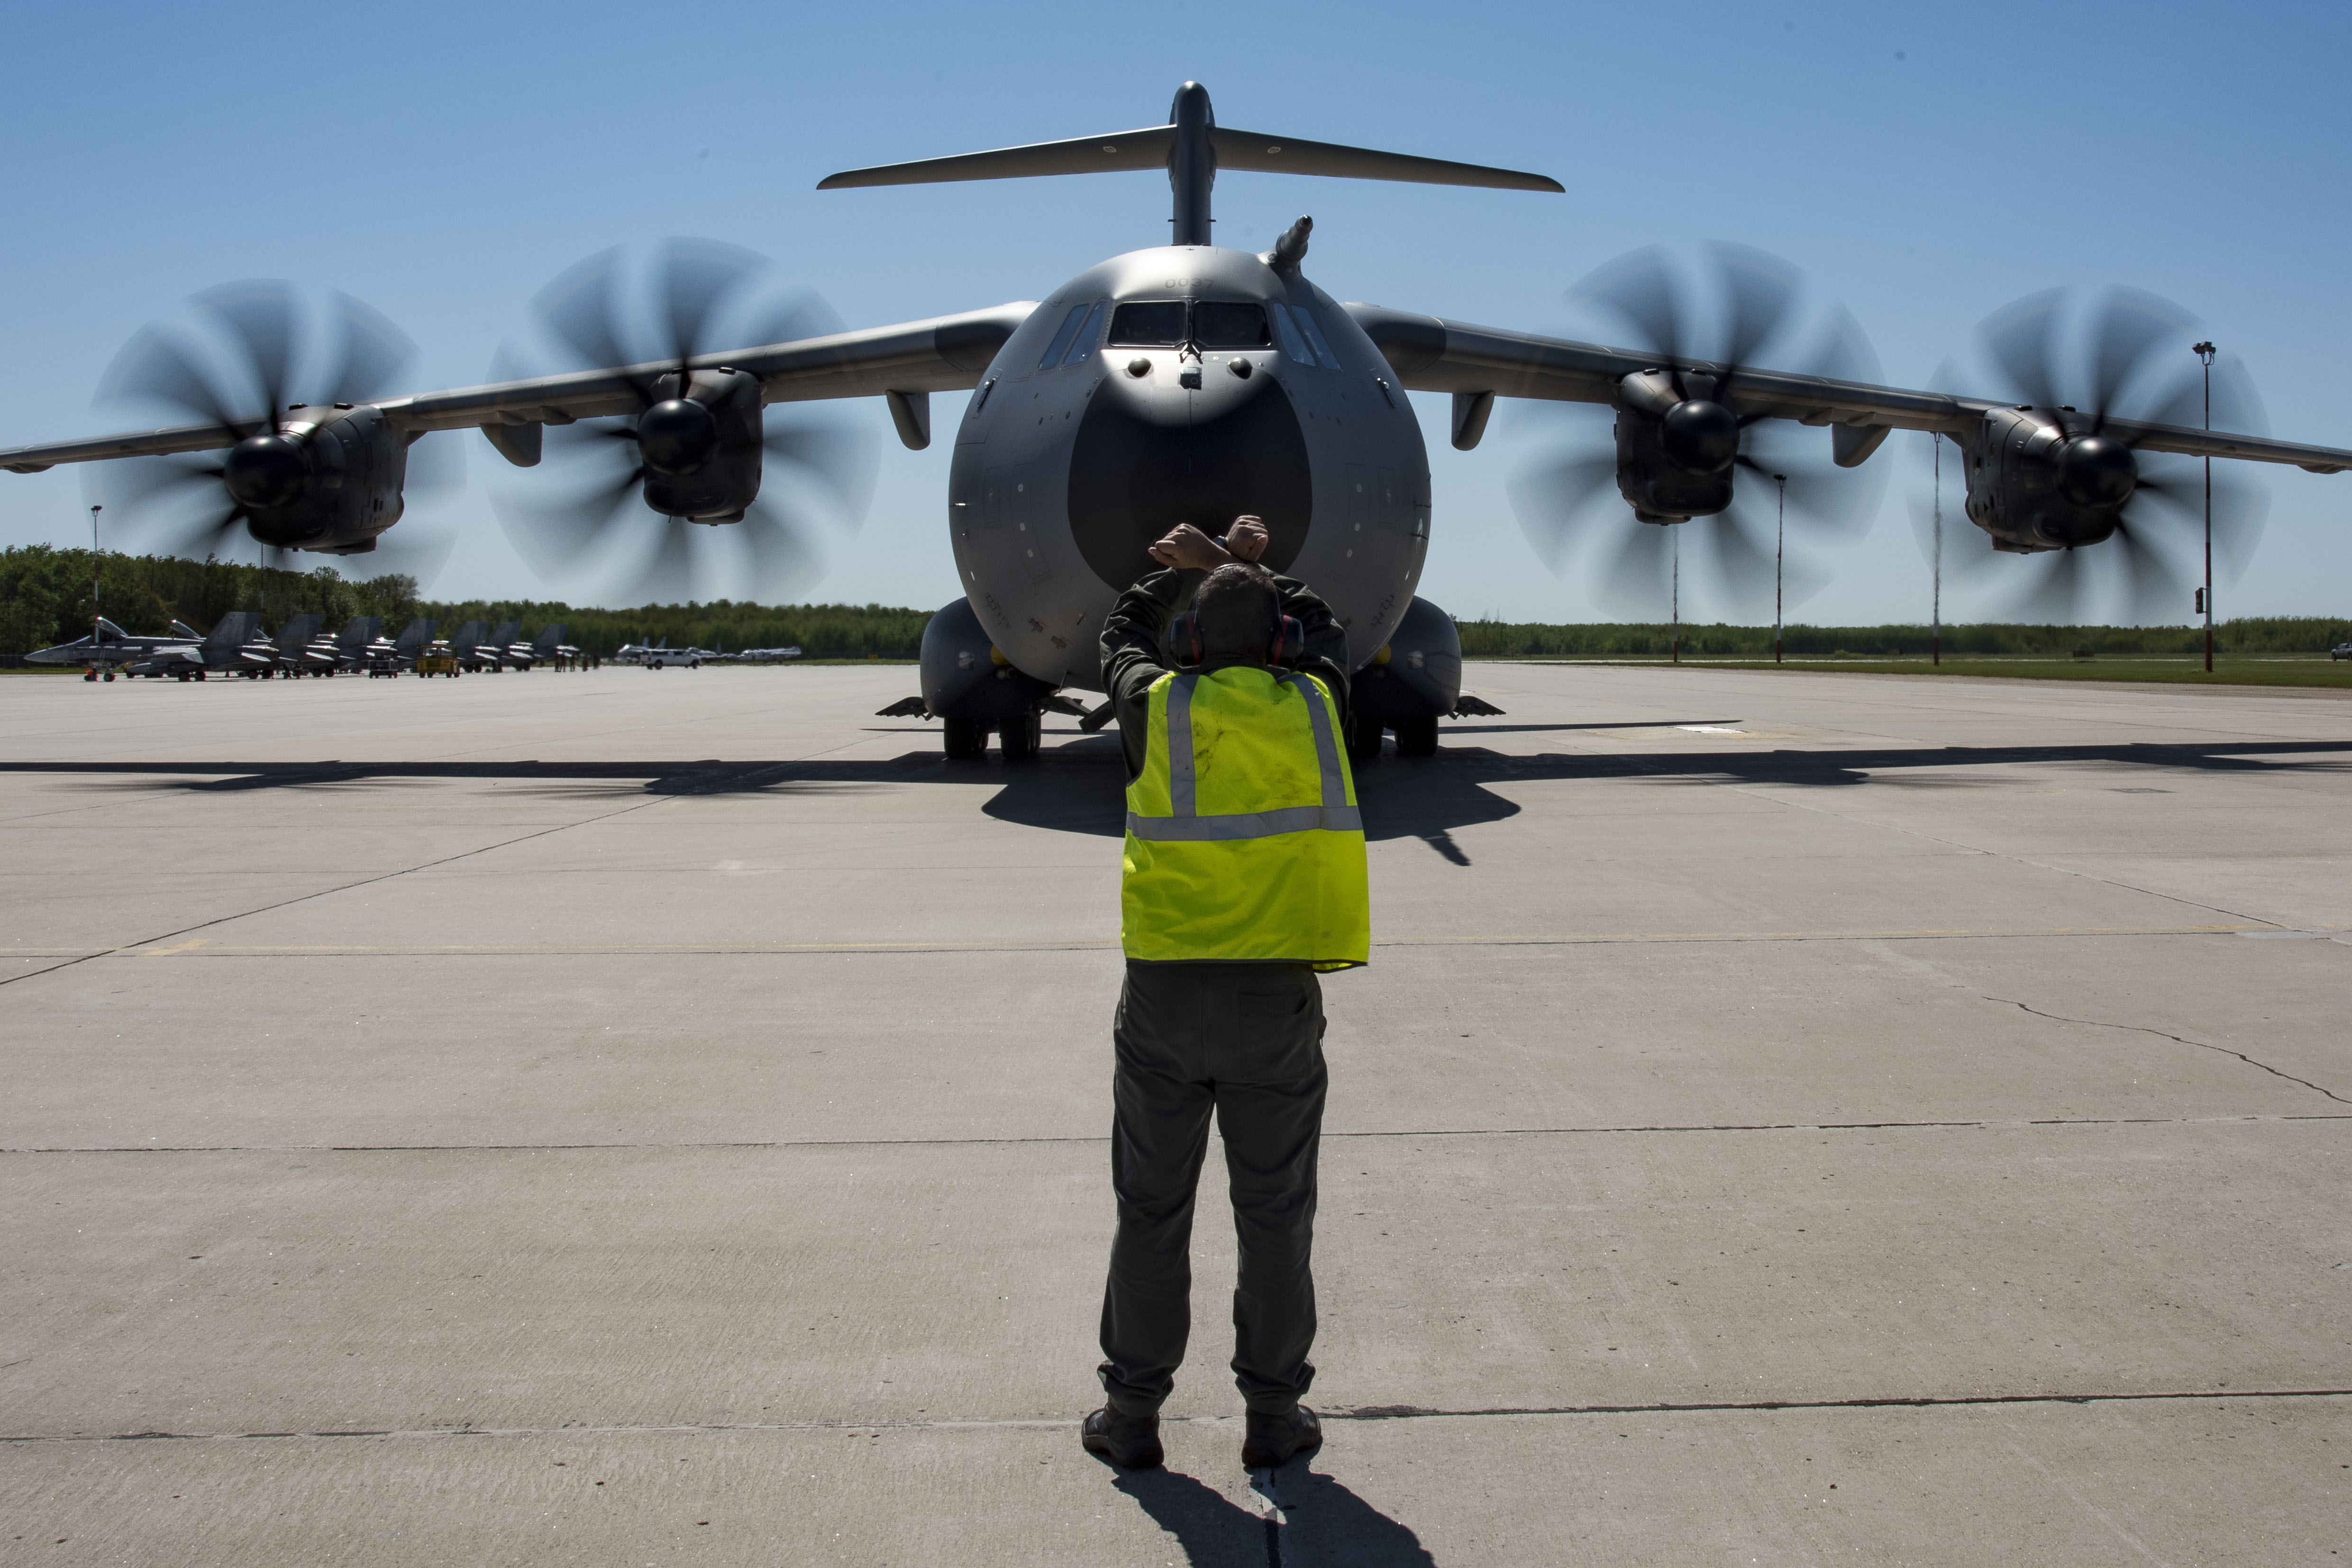 A French Air Force technician marshals a A400M Atlas aircraft after landing on the ramp, during Exercise Maple Flag 50, at 4 Wing Cold Lake, on May 29, 2017. PHOTO: Corporal Justin Roy, CK07-2017-0460-005